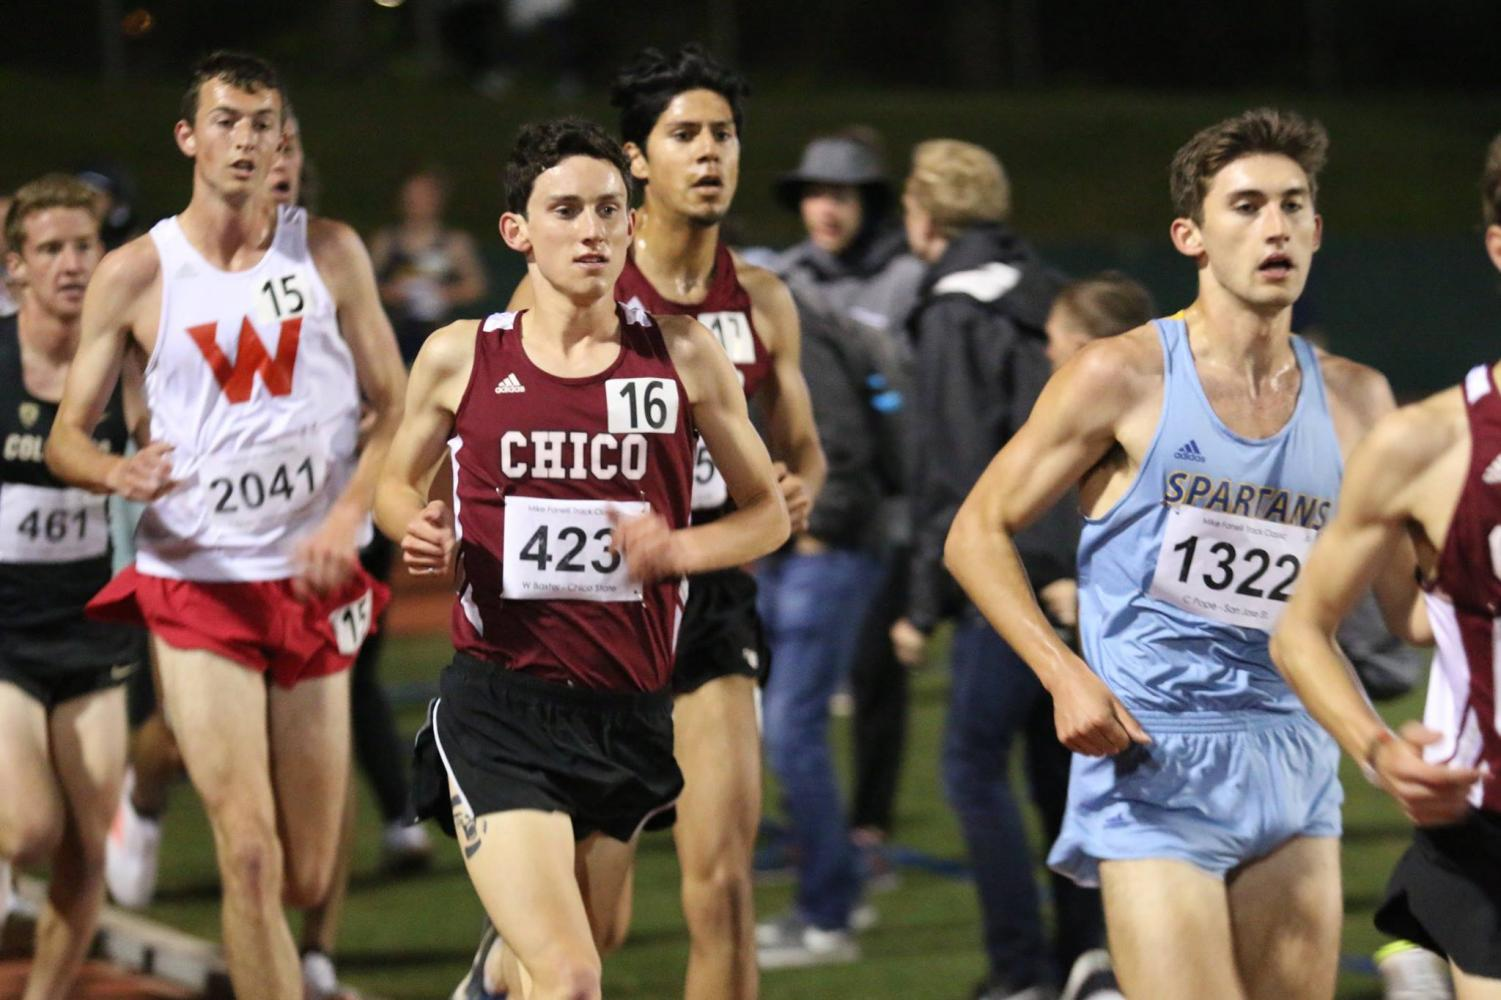 #16 Wyatt Baxter is a dual-sport athlete who runs cross-country in the Fall and the men's 5,000 meters and 10,000 meters for track in the spring.  Image courtesy: Chico sports information